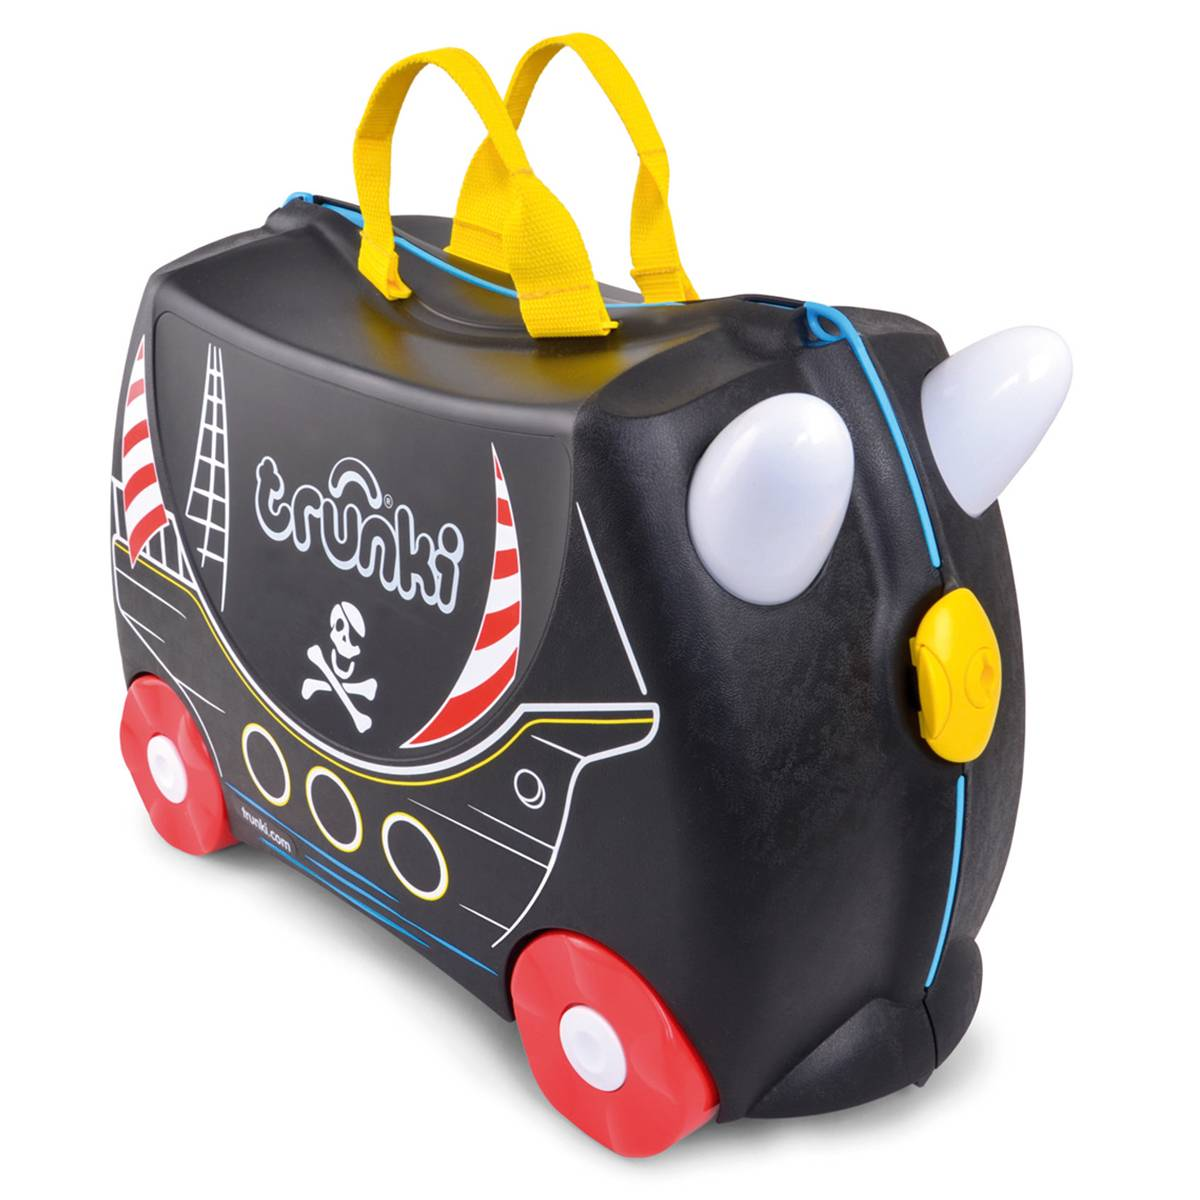 Trunki Valise Ride-on - Pirate Pedro